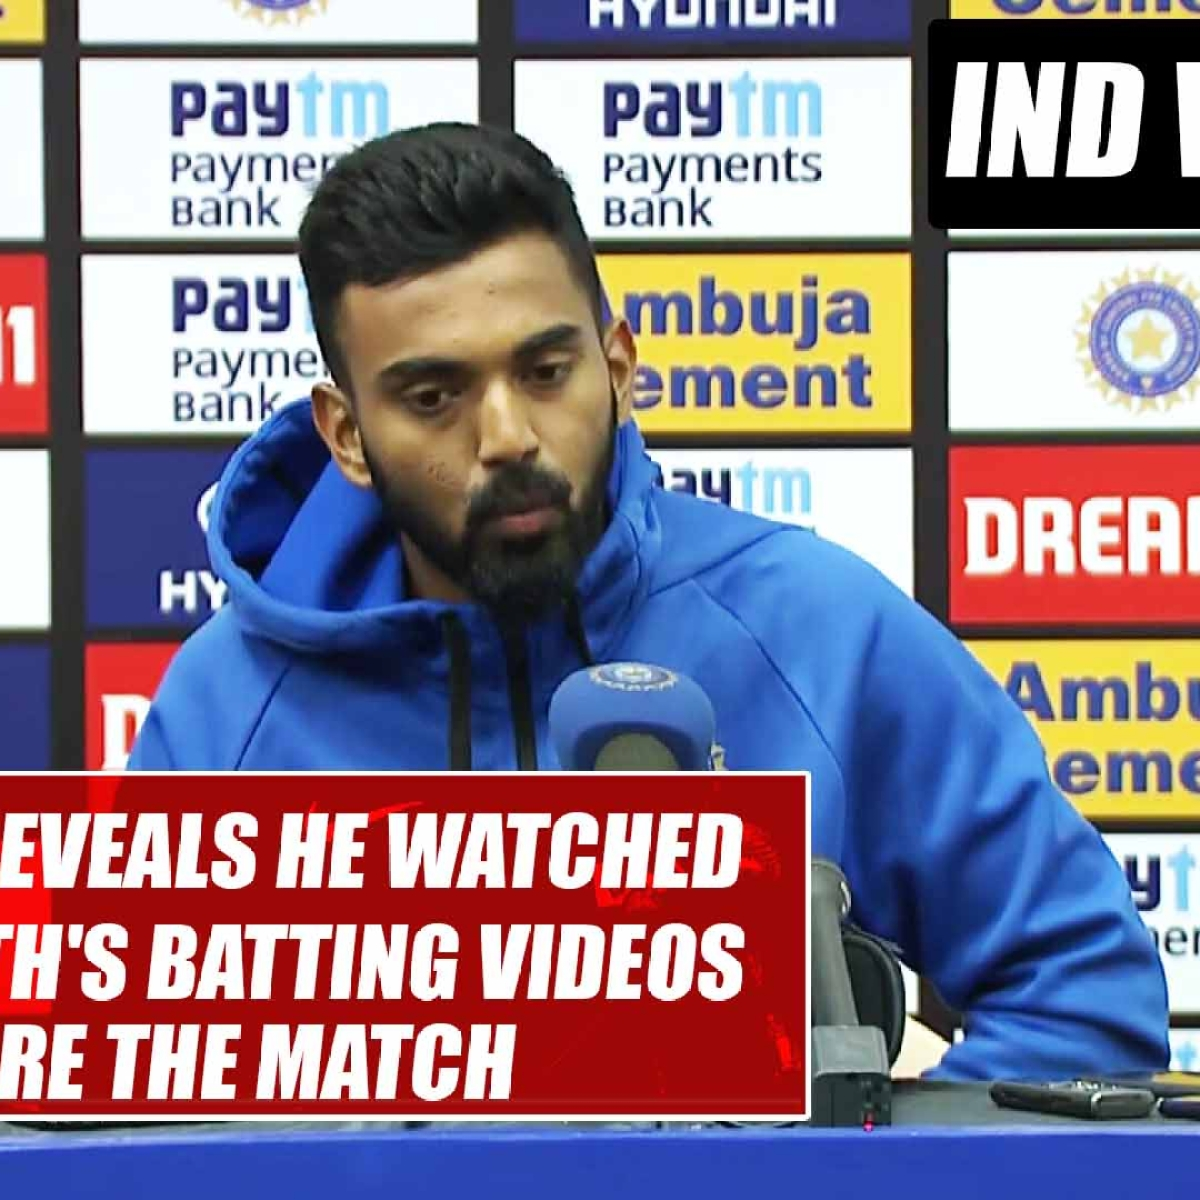 IND vs AUS: KL Rahul reveals he watched Steve Smith's batting videos before the match